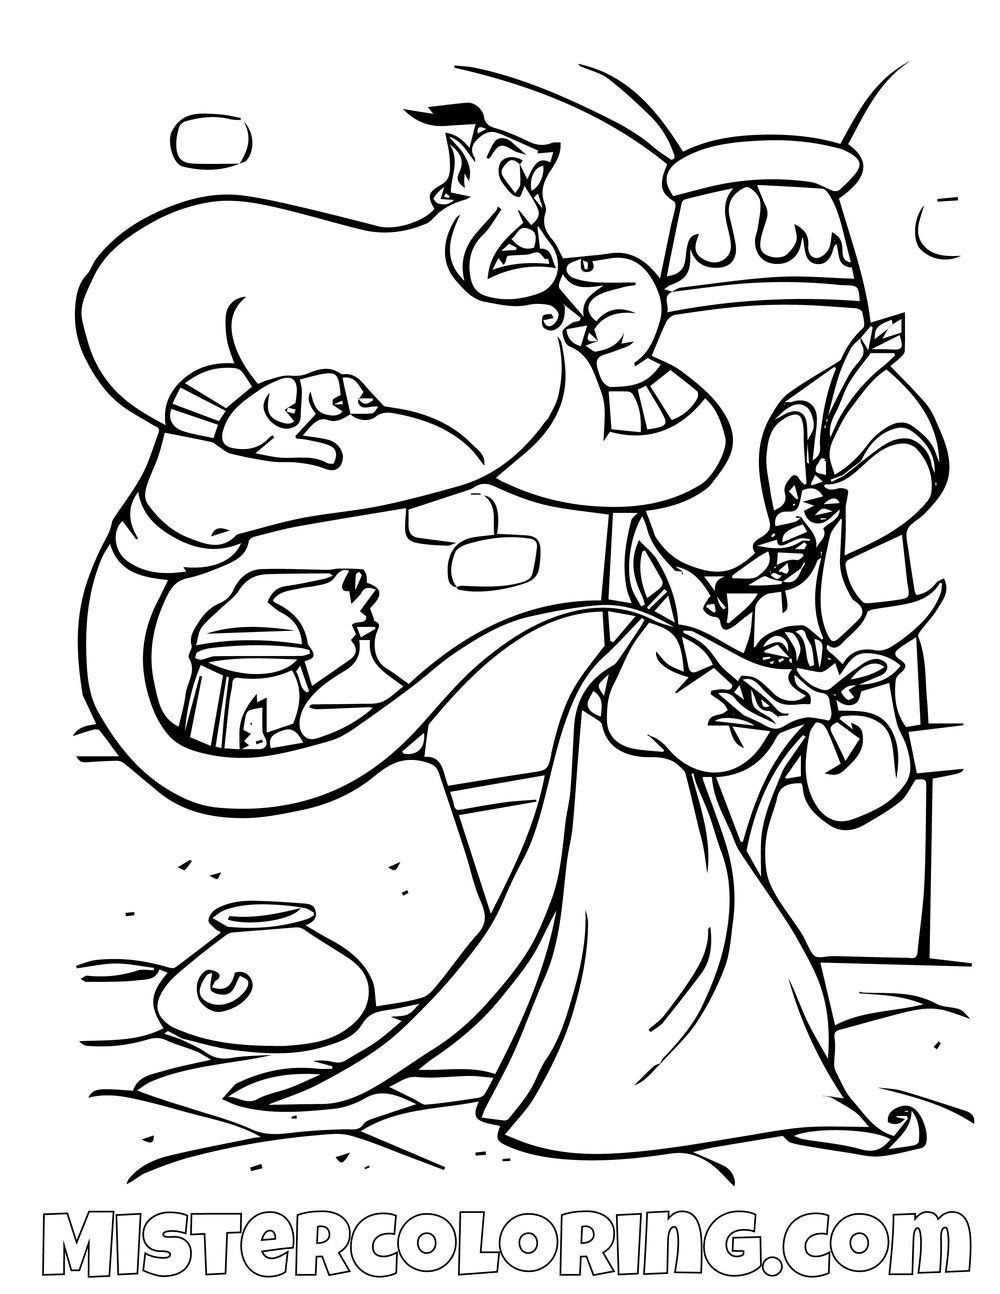 Genie Captured By Jafar Aladdin Coloring Page Disney Coloring Pages Princess Coloring Pages Disney Princess Coloring Pages